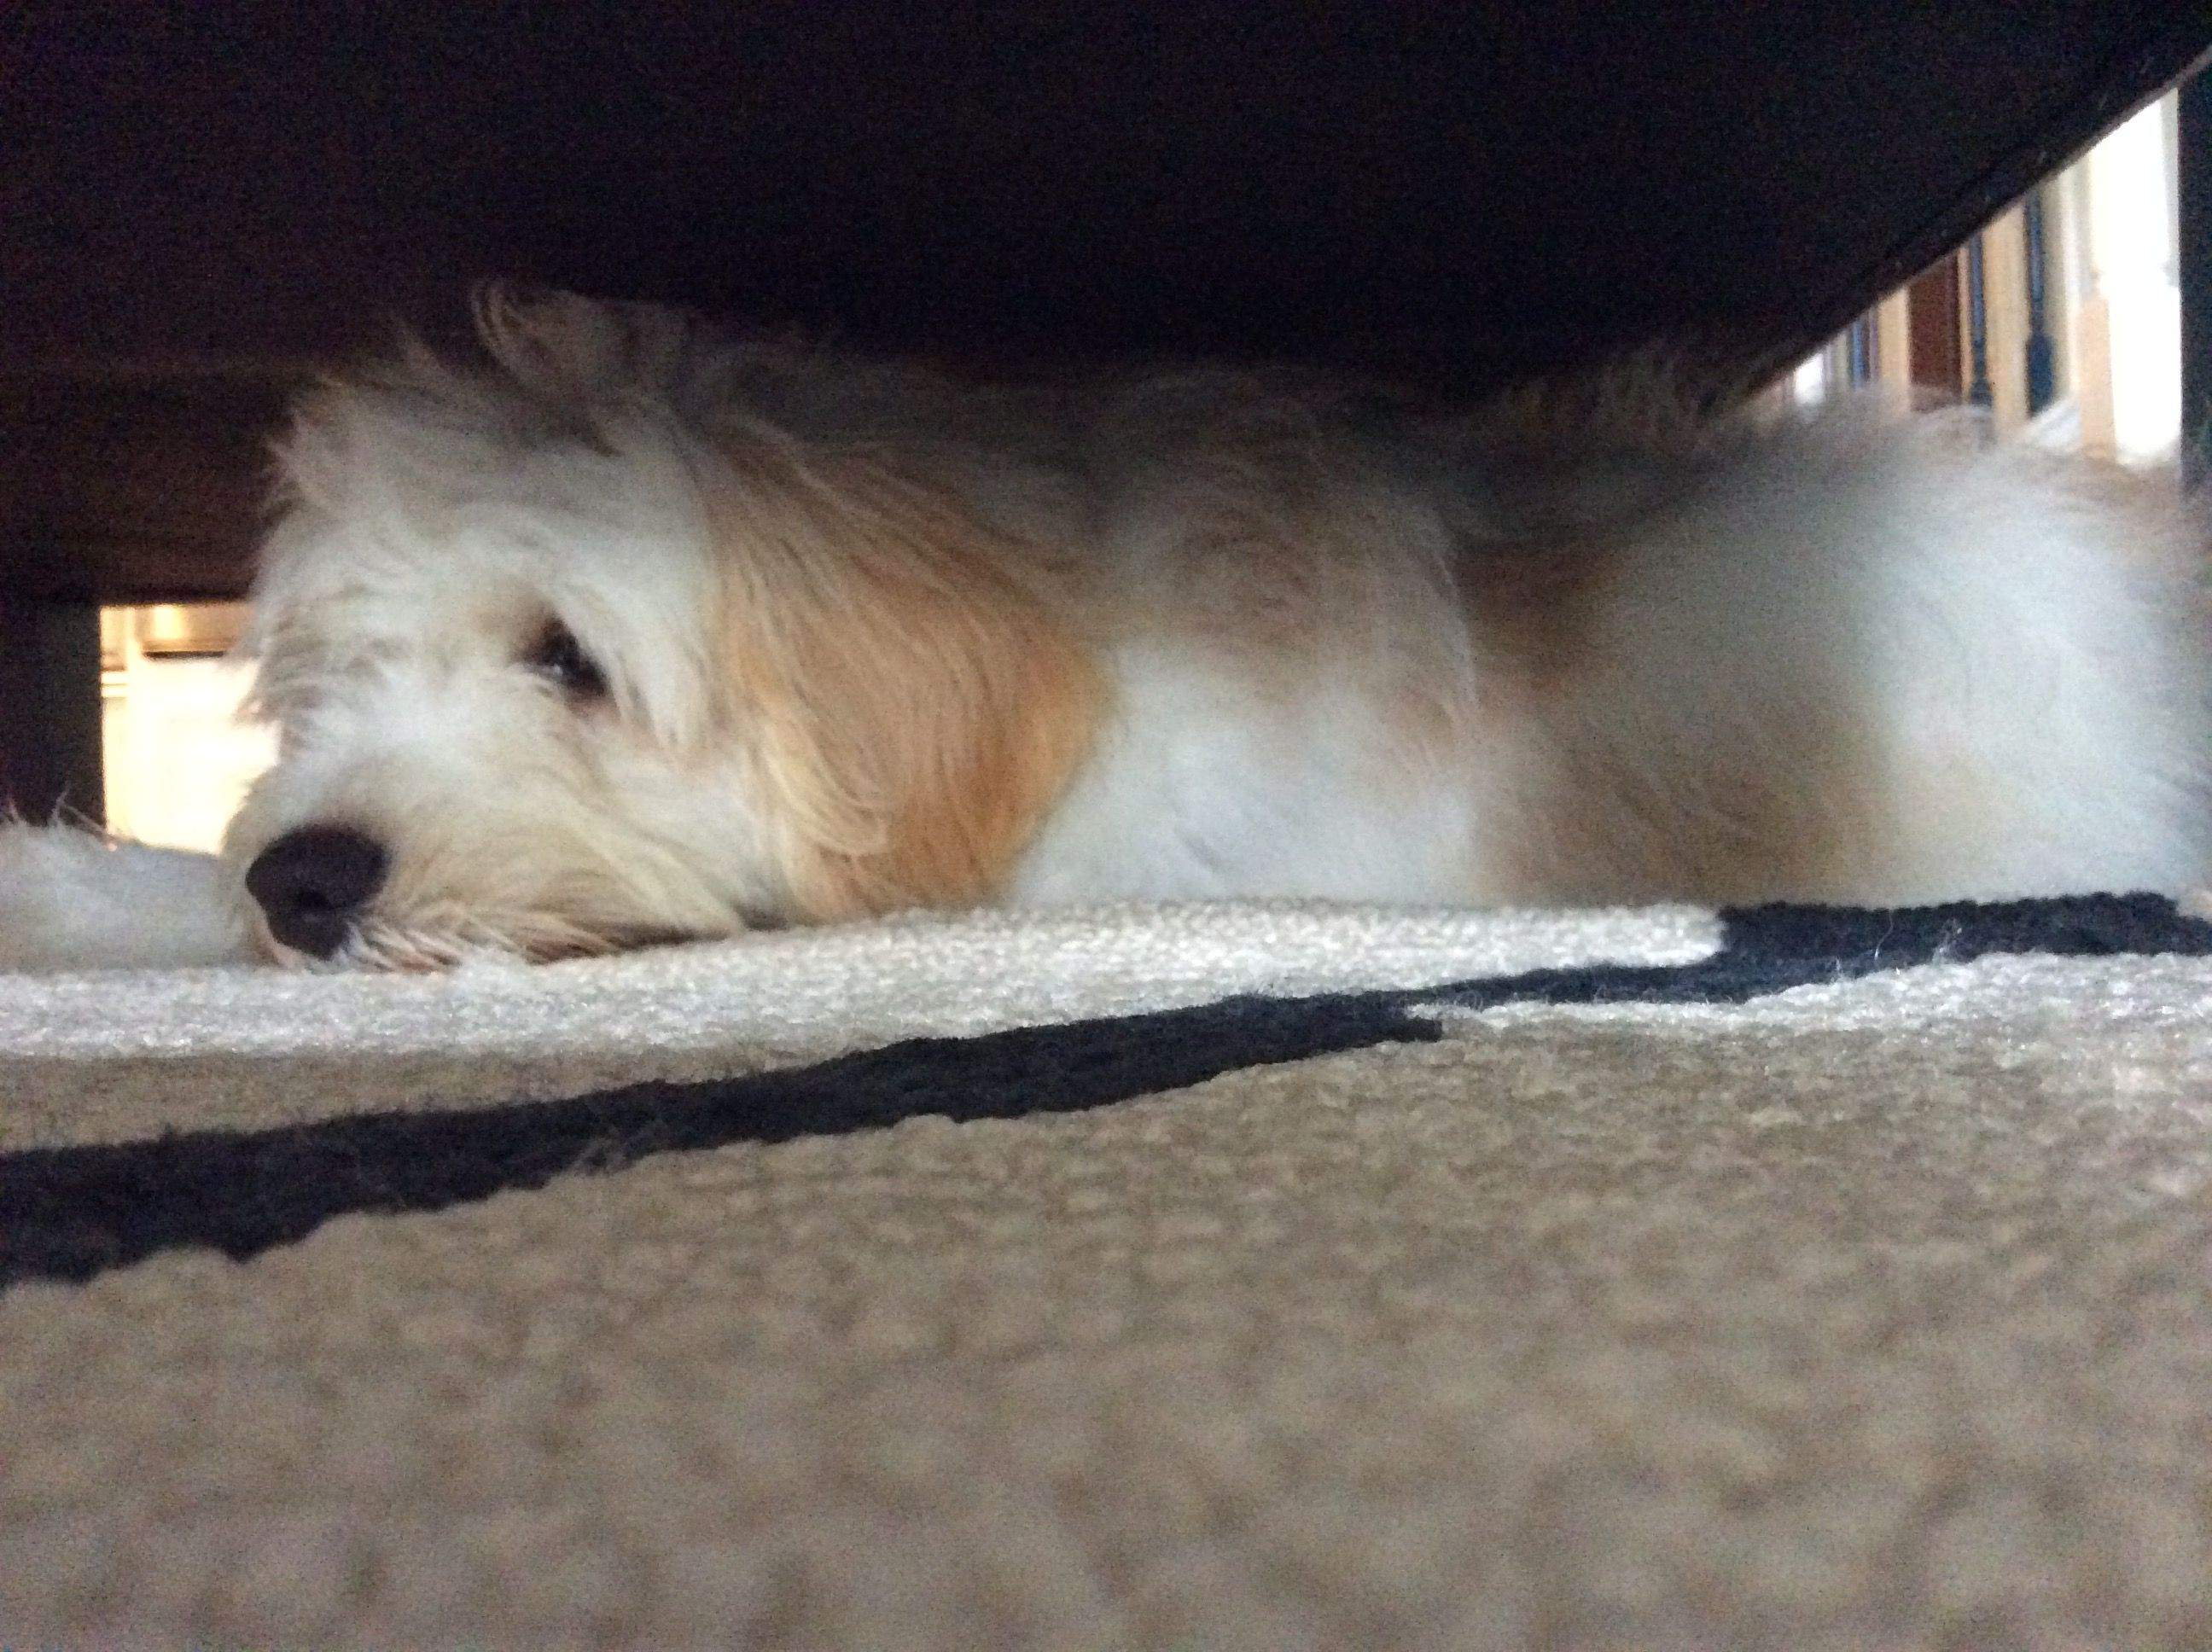 My pup stayed under a chair for two day when we first got her because she was so scared.